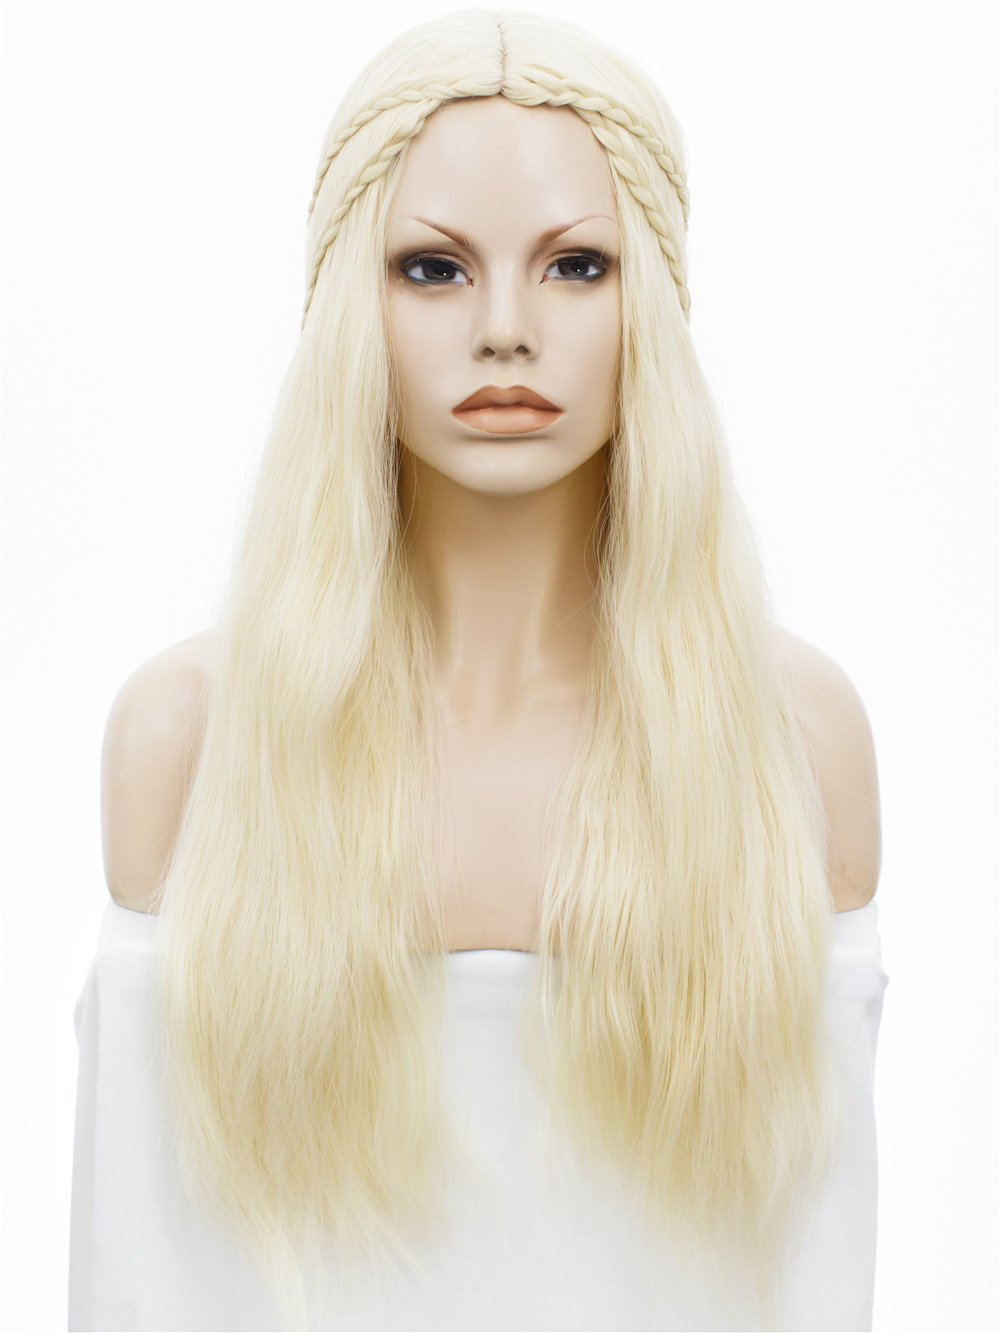 Imstyle® Long Curly Wavy Braids White Full Wig Cosplay Celebrity Costume Wig Hair